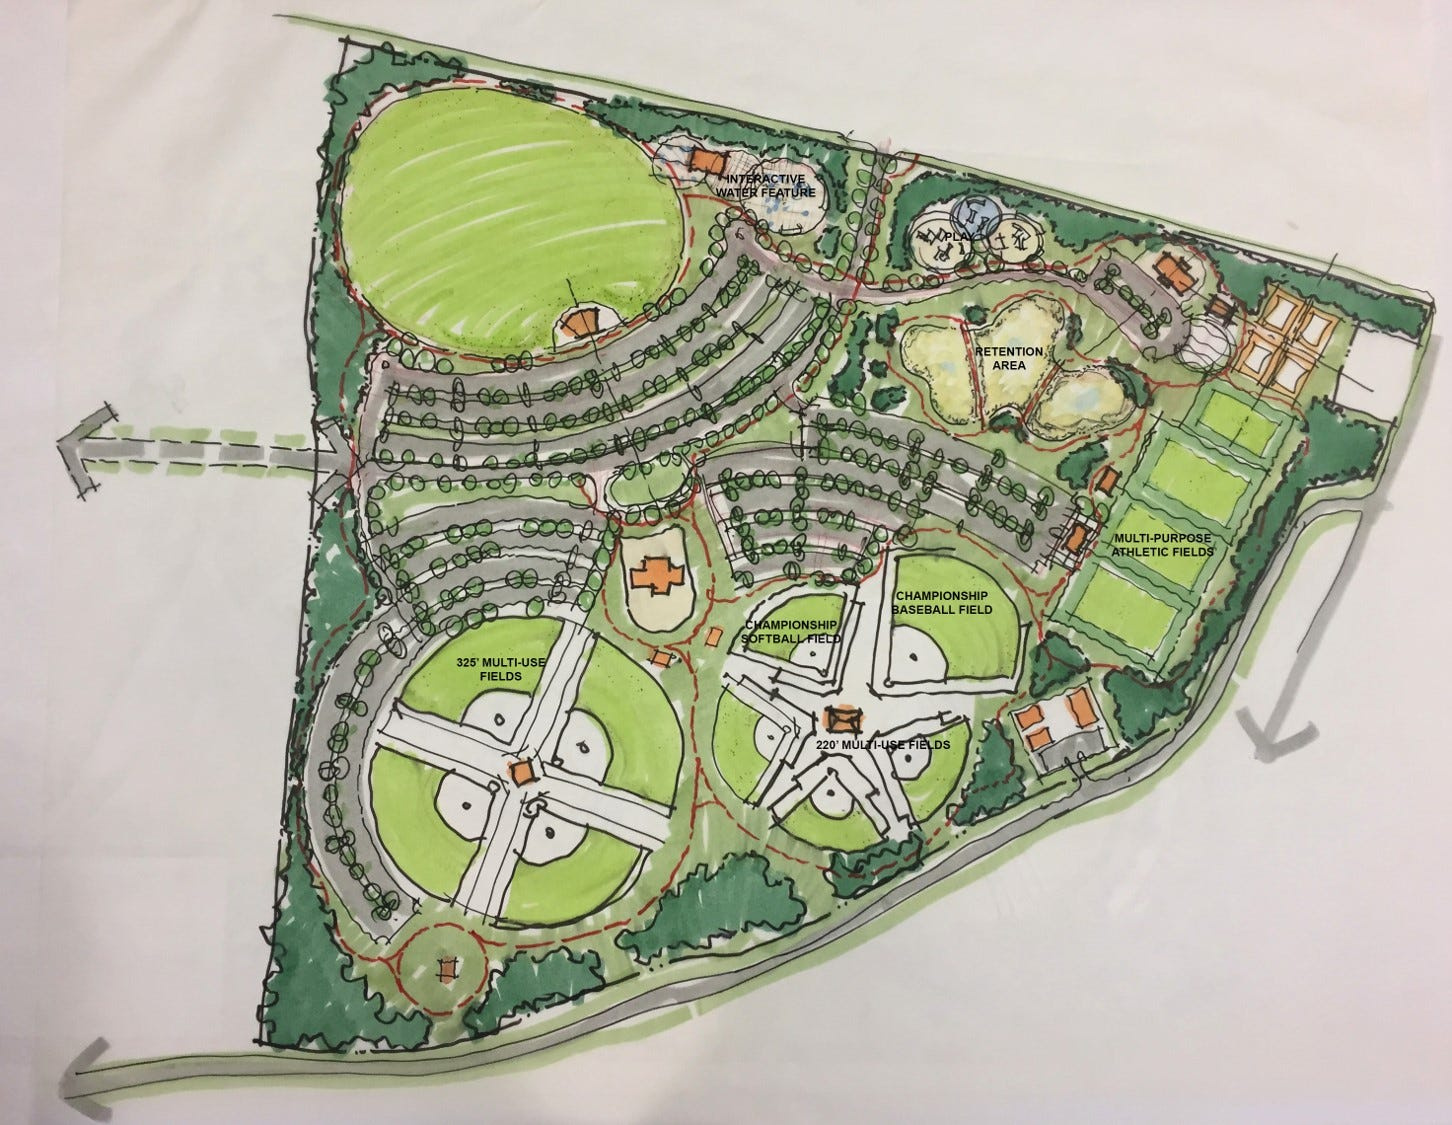 City presented 3 options for west park design this malvernweather Choice Image